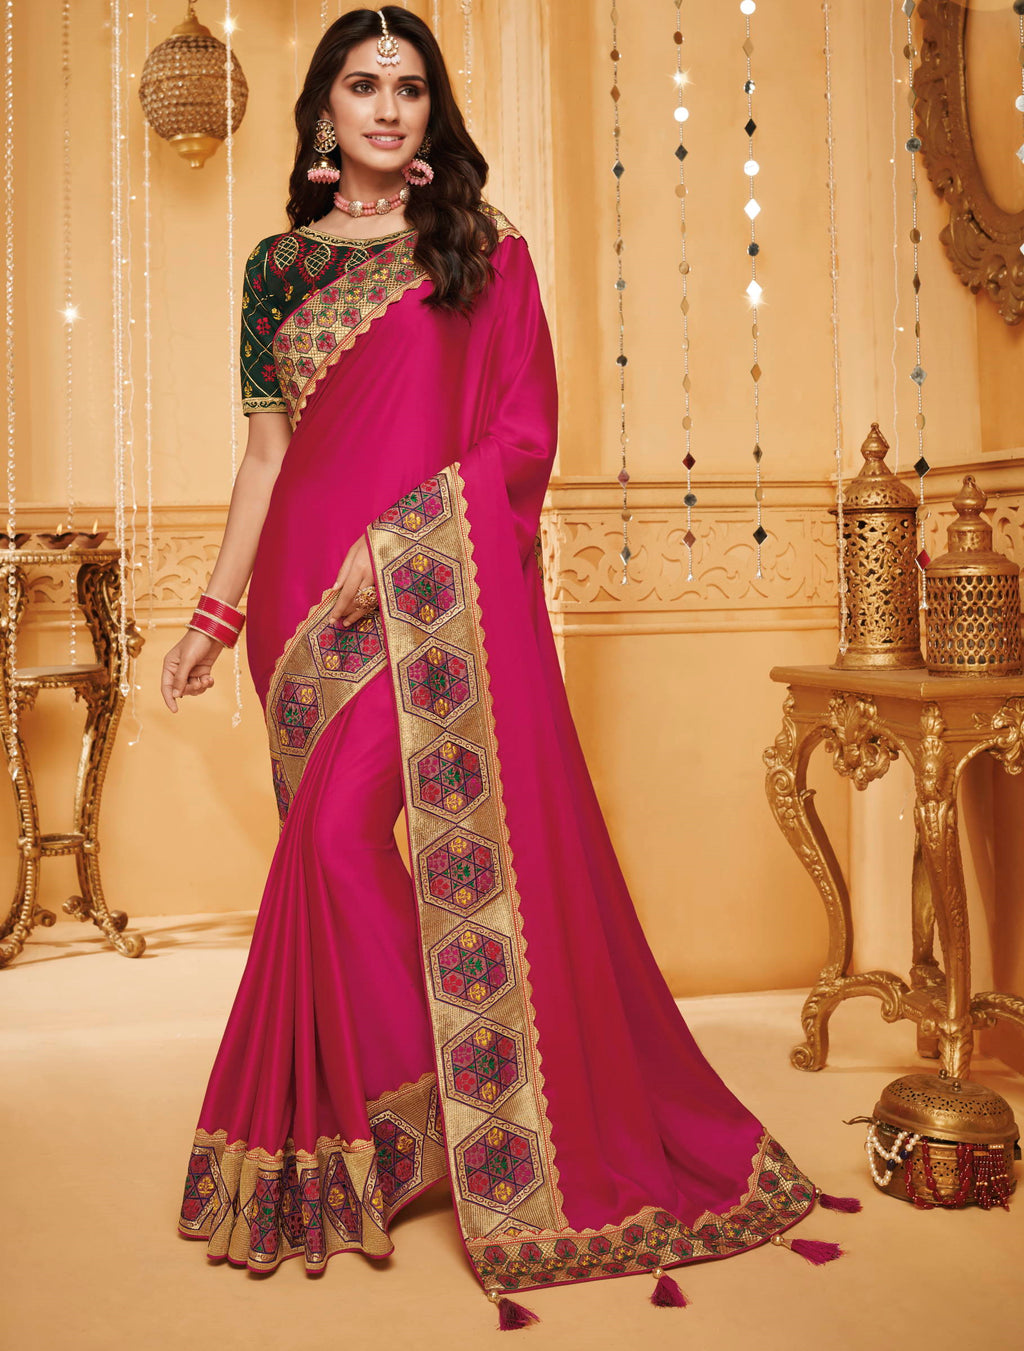 Rani Pink Color Silk Beautiful Occasion Wear Sarees NYF-4193 - YellowFashion.in